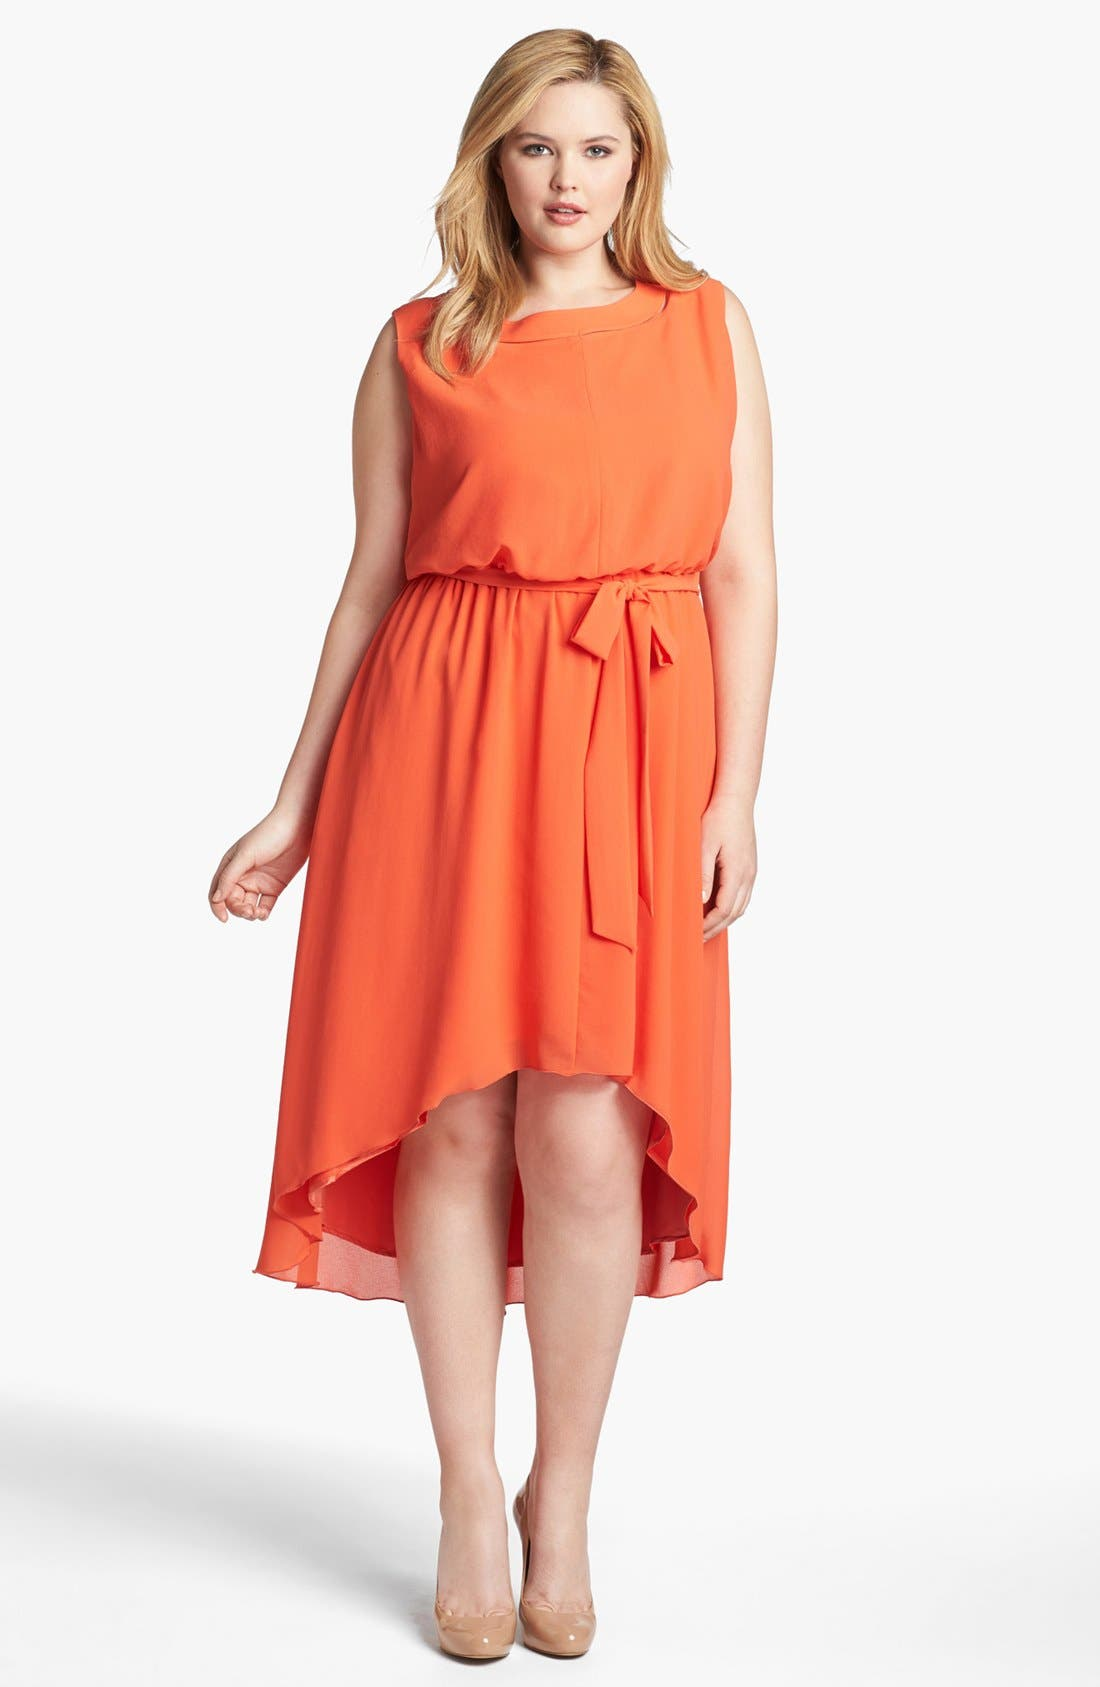 Alternate Image 1 Selected - Jessica Simpson Blouson High/Low Crepe Dress (Plus Size)